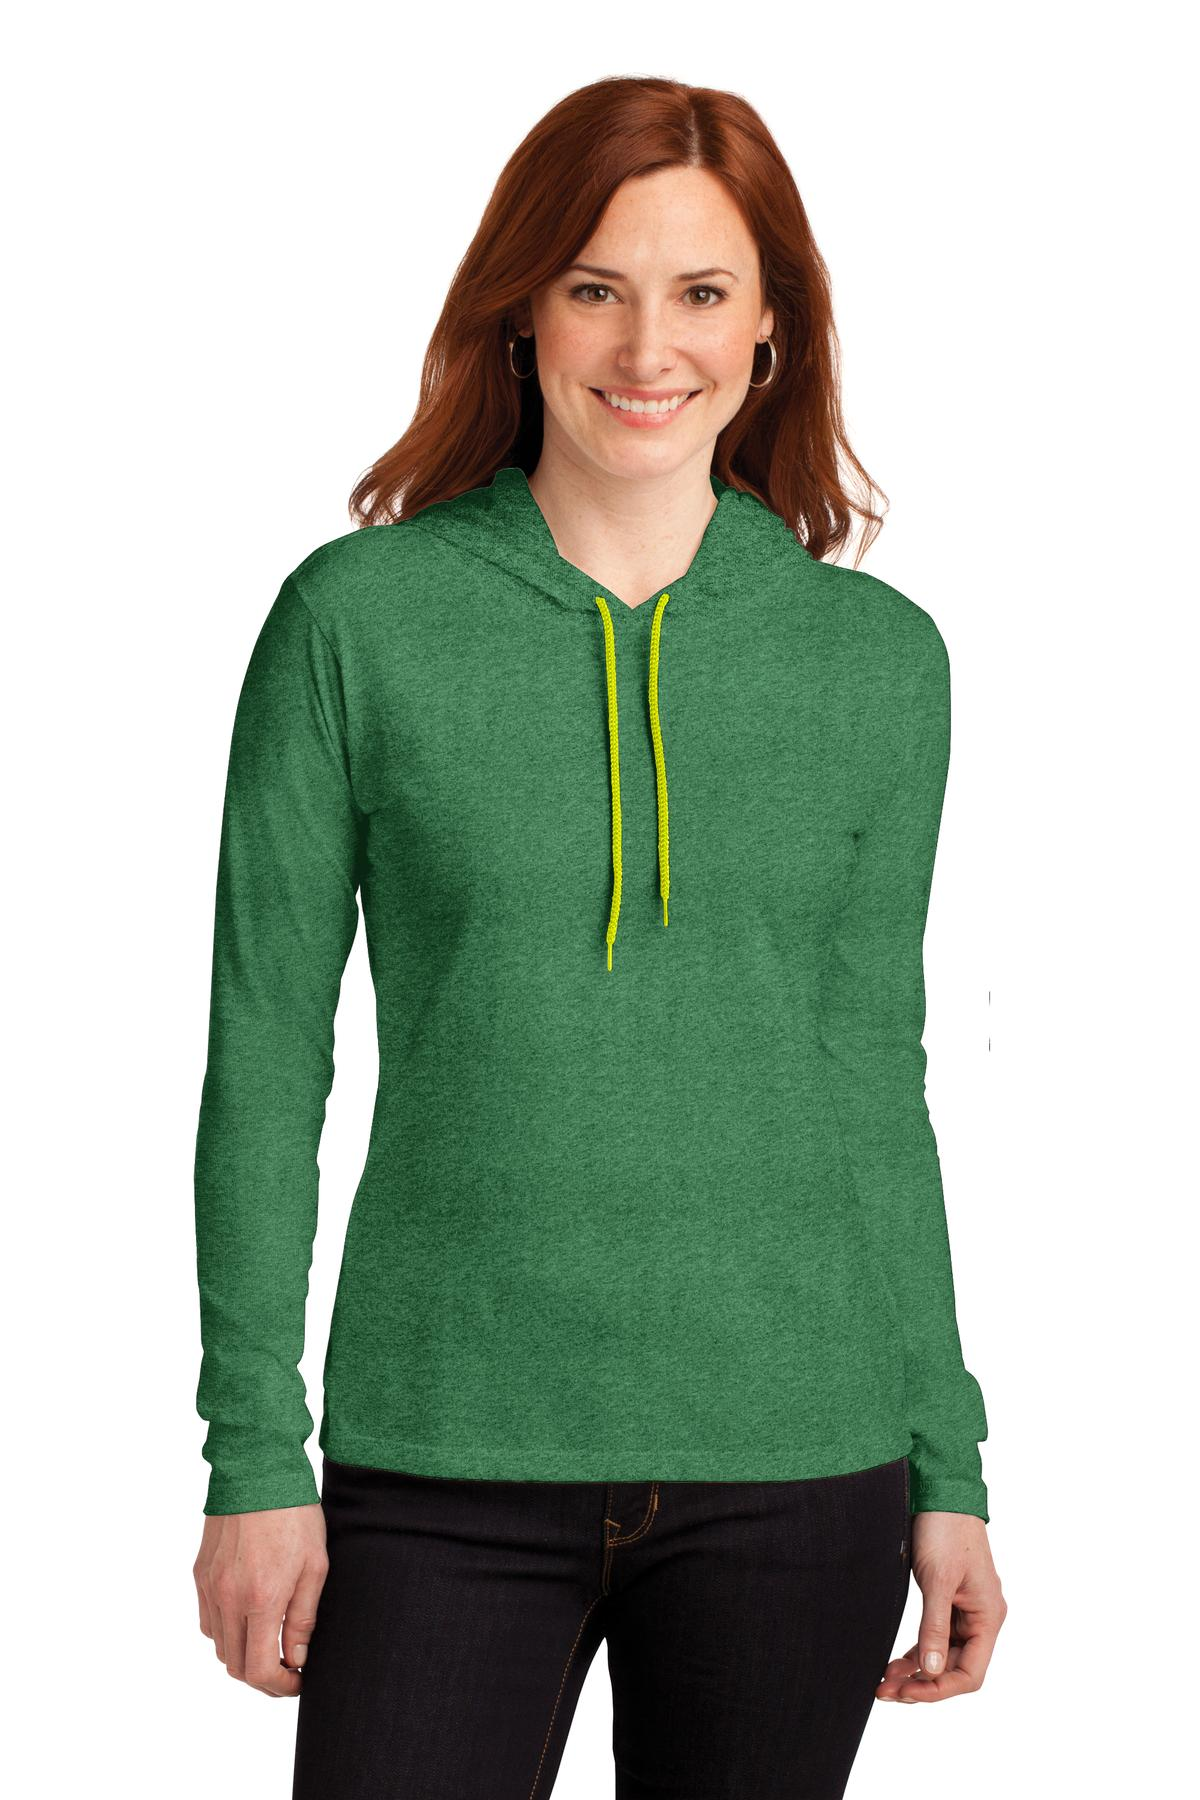 Anvil ®  Ladies 100% Combed Ring Spun Cotton Long Sleeve Hooded T-Shirt. 887L - Heather Green/ Neon Yellow